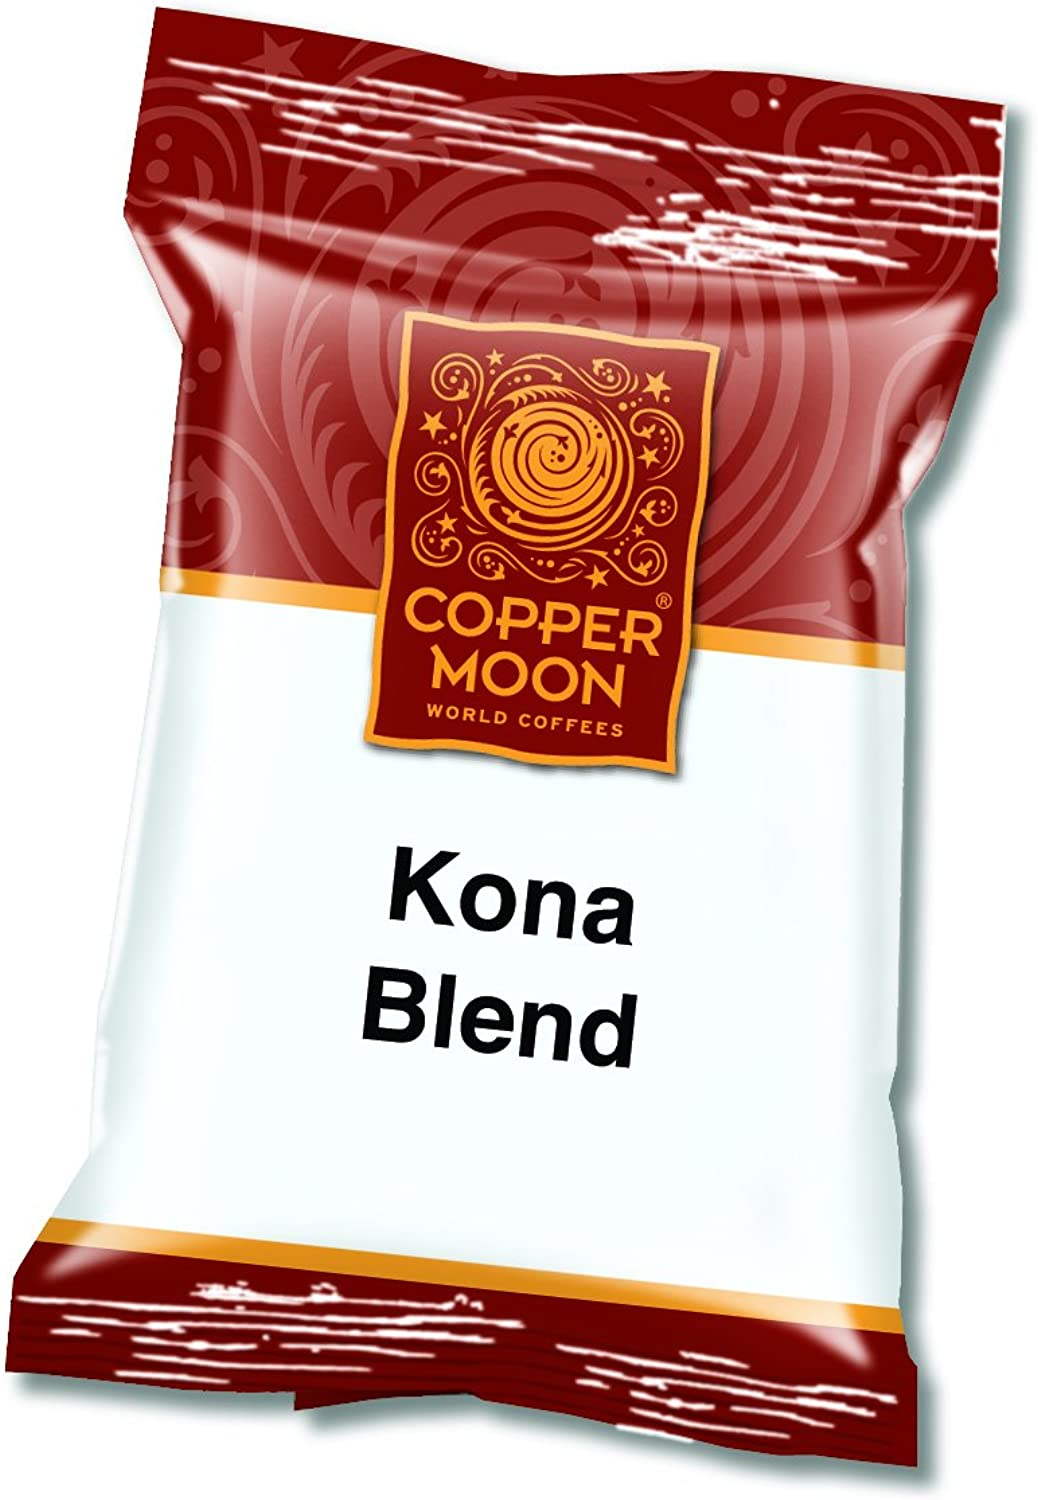 Copper Moon Kona Blend Coffee, Portion Pack, 2.25 oz, 36Count